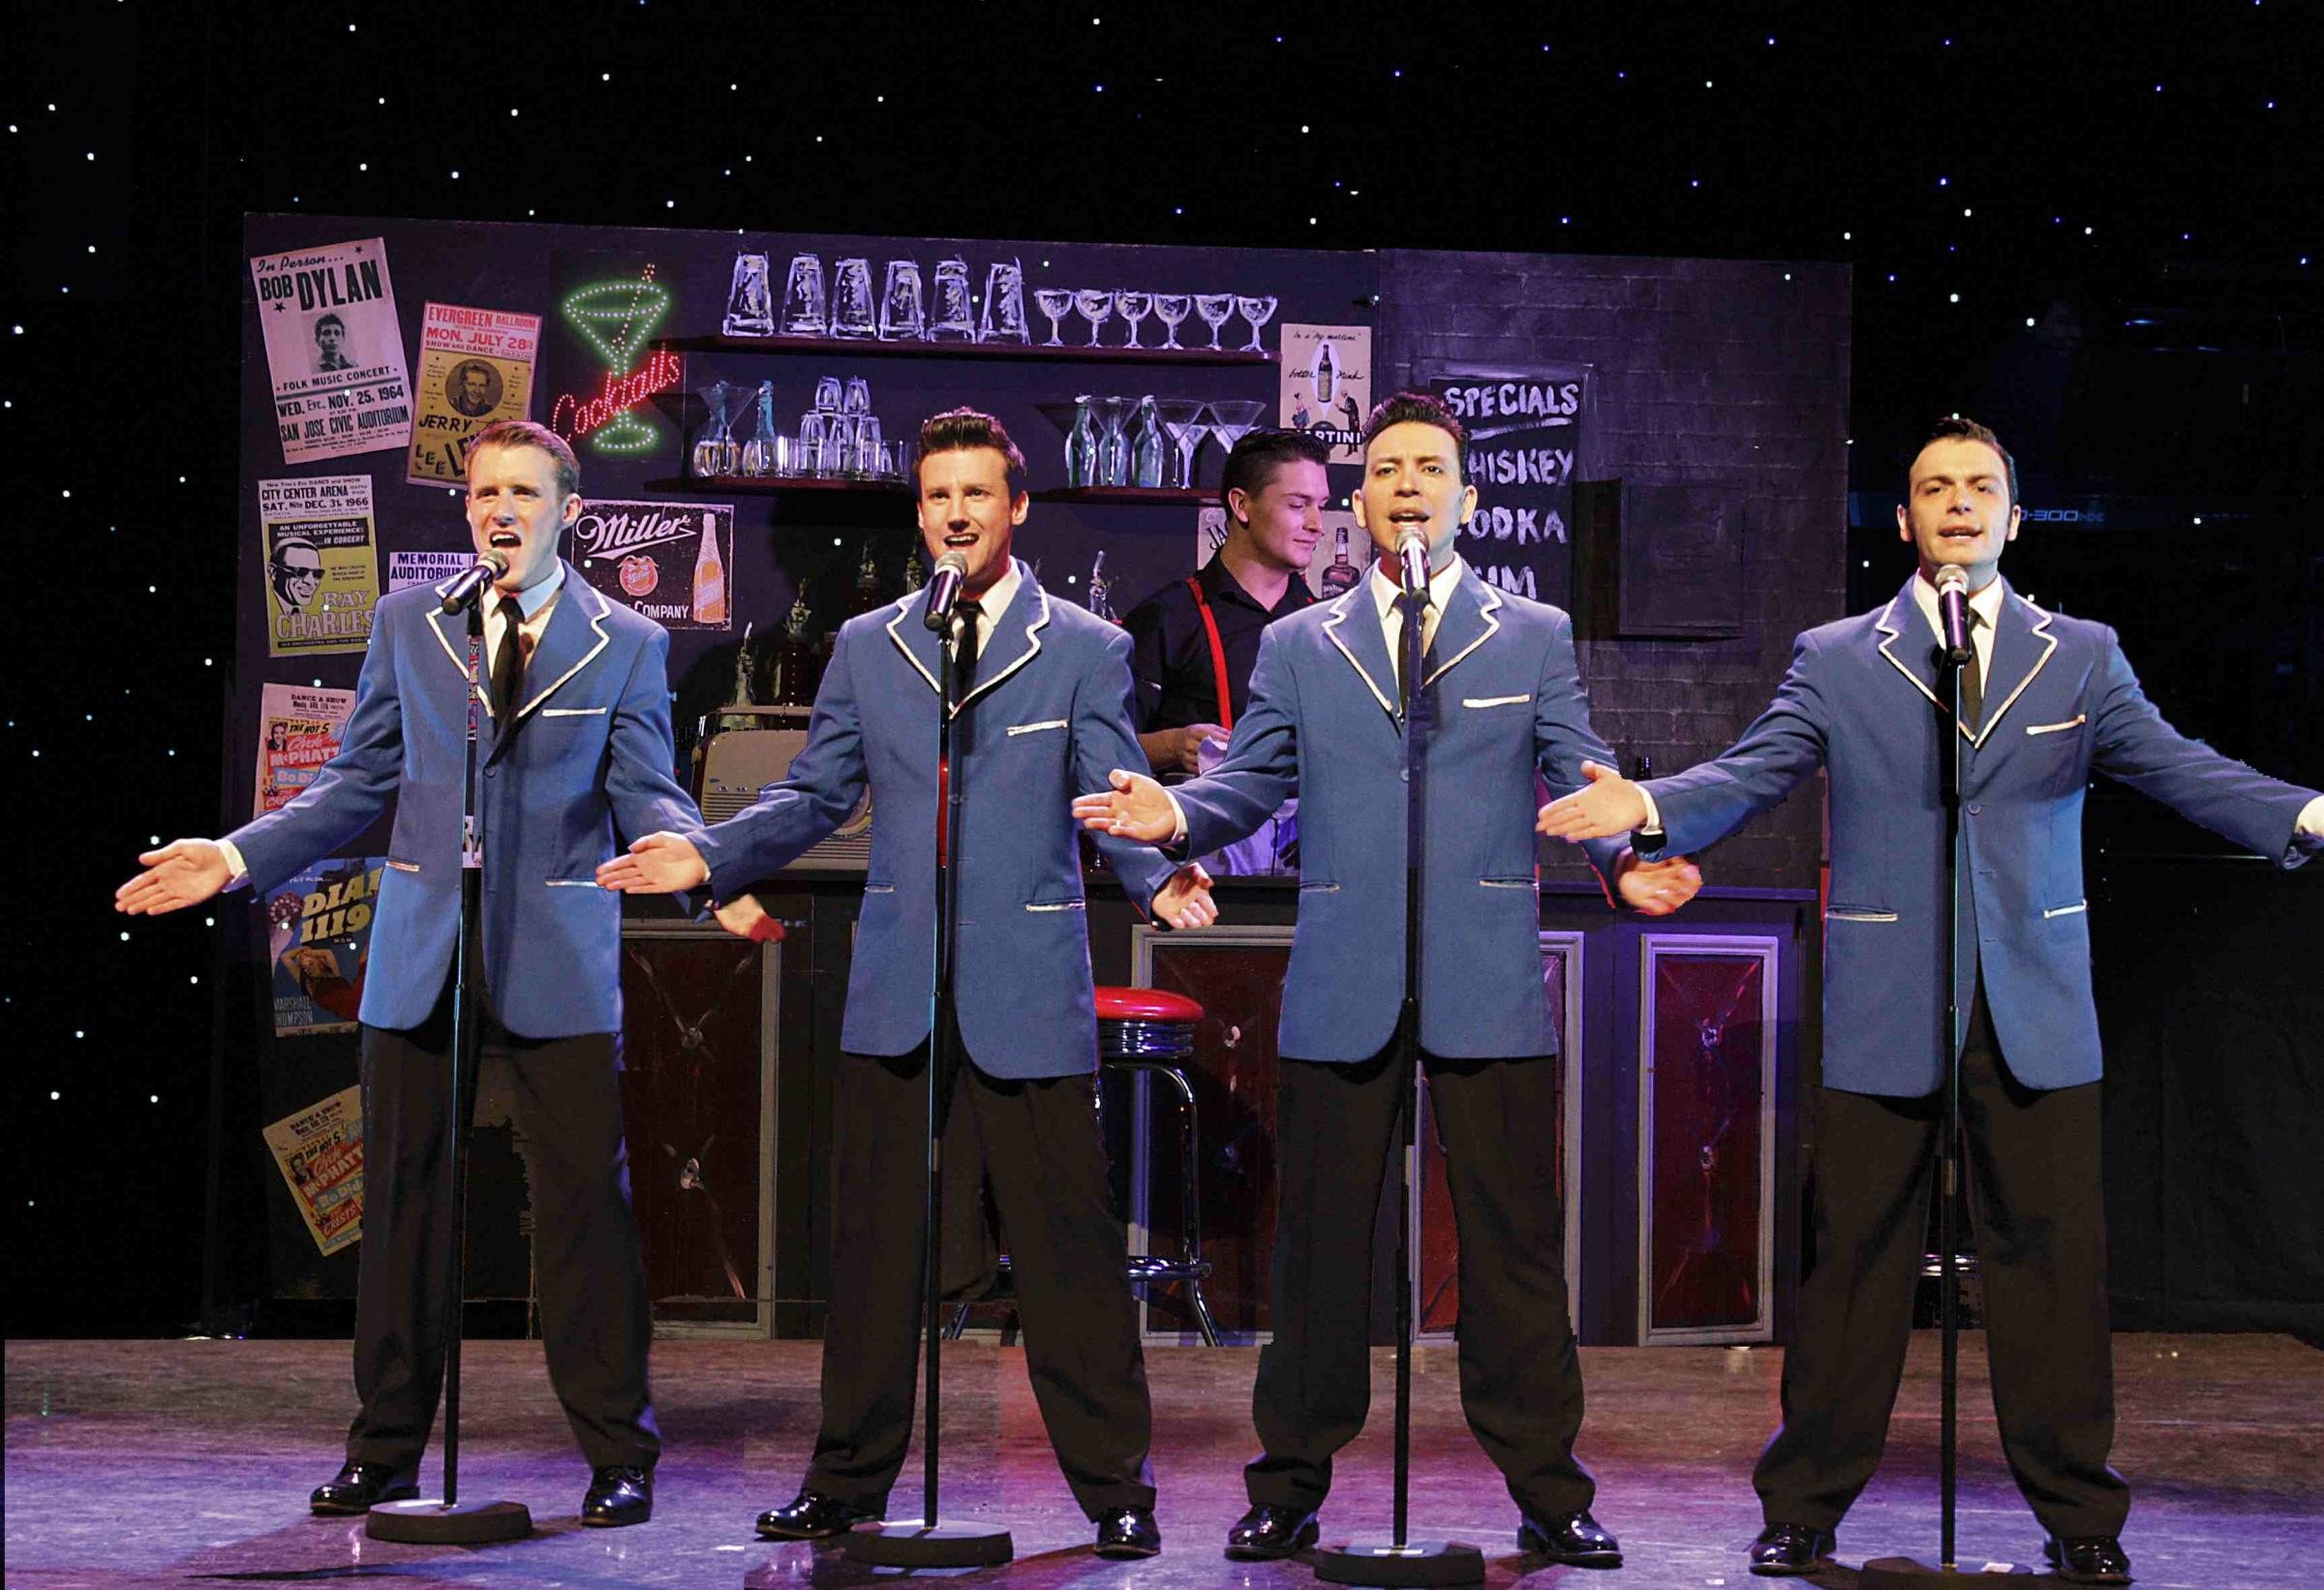 Review: New Jersey Nights at the Theatre Royal Bath